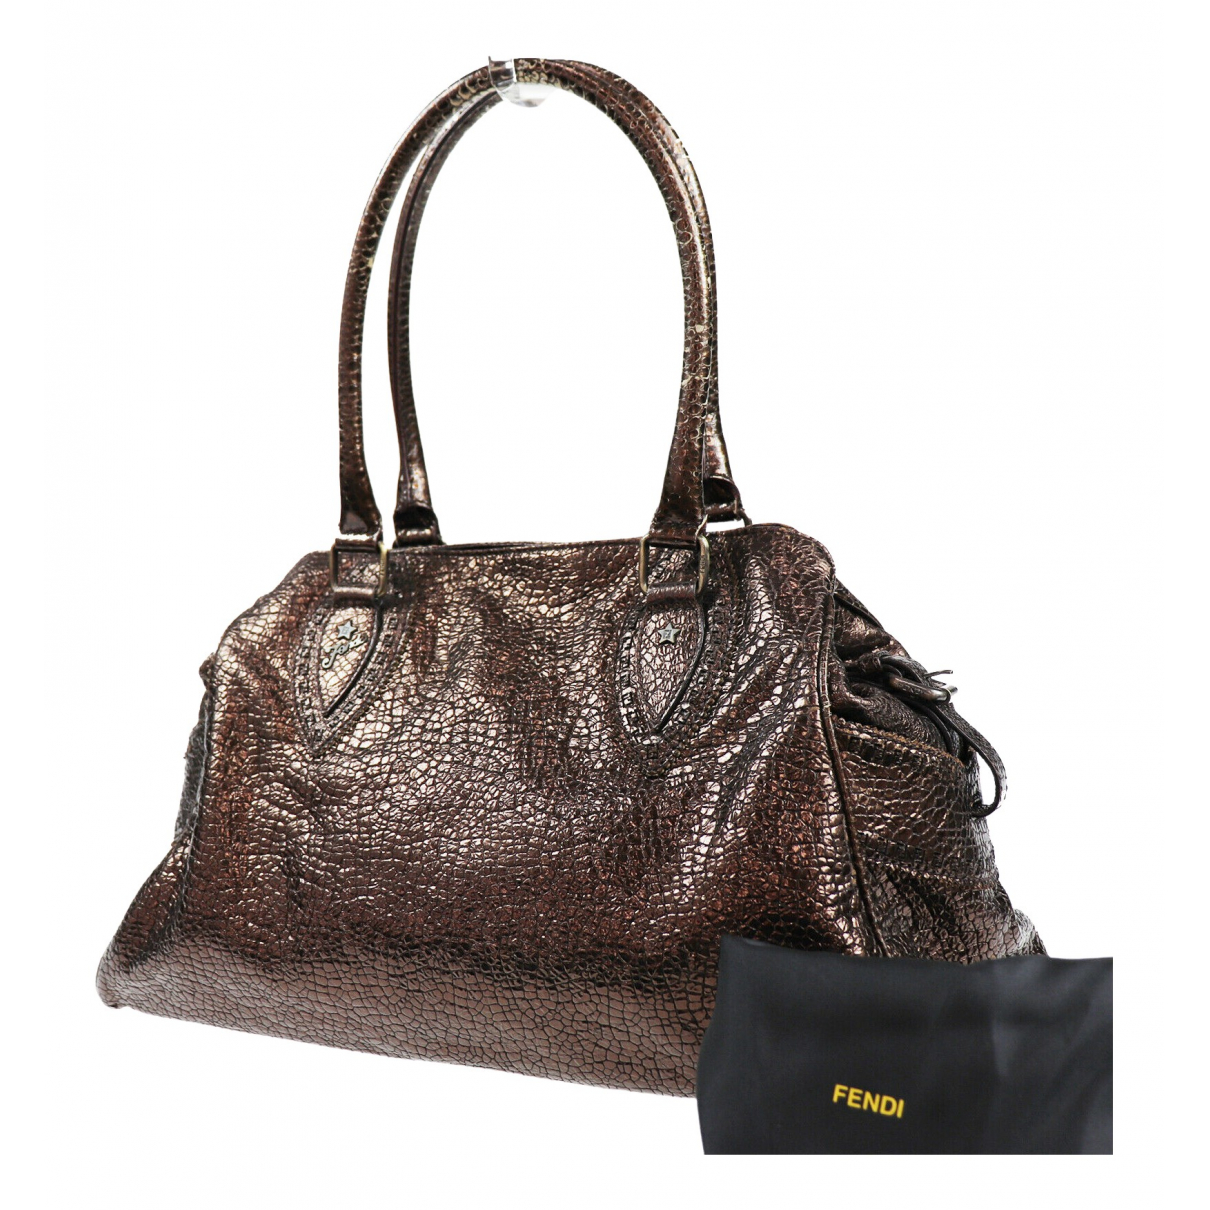 Fendi \N Brown Patent leather handbag for Women \N